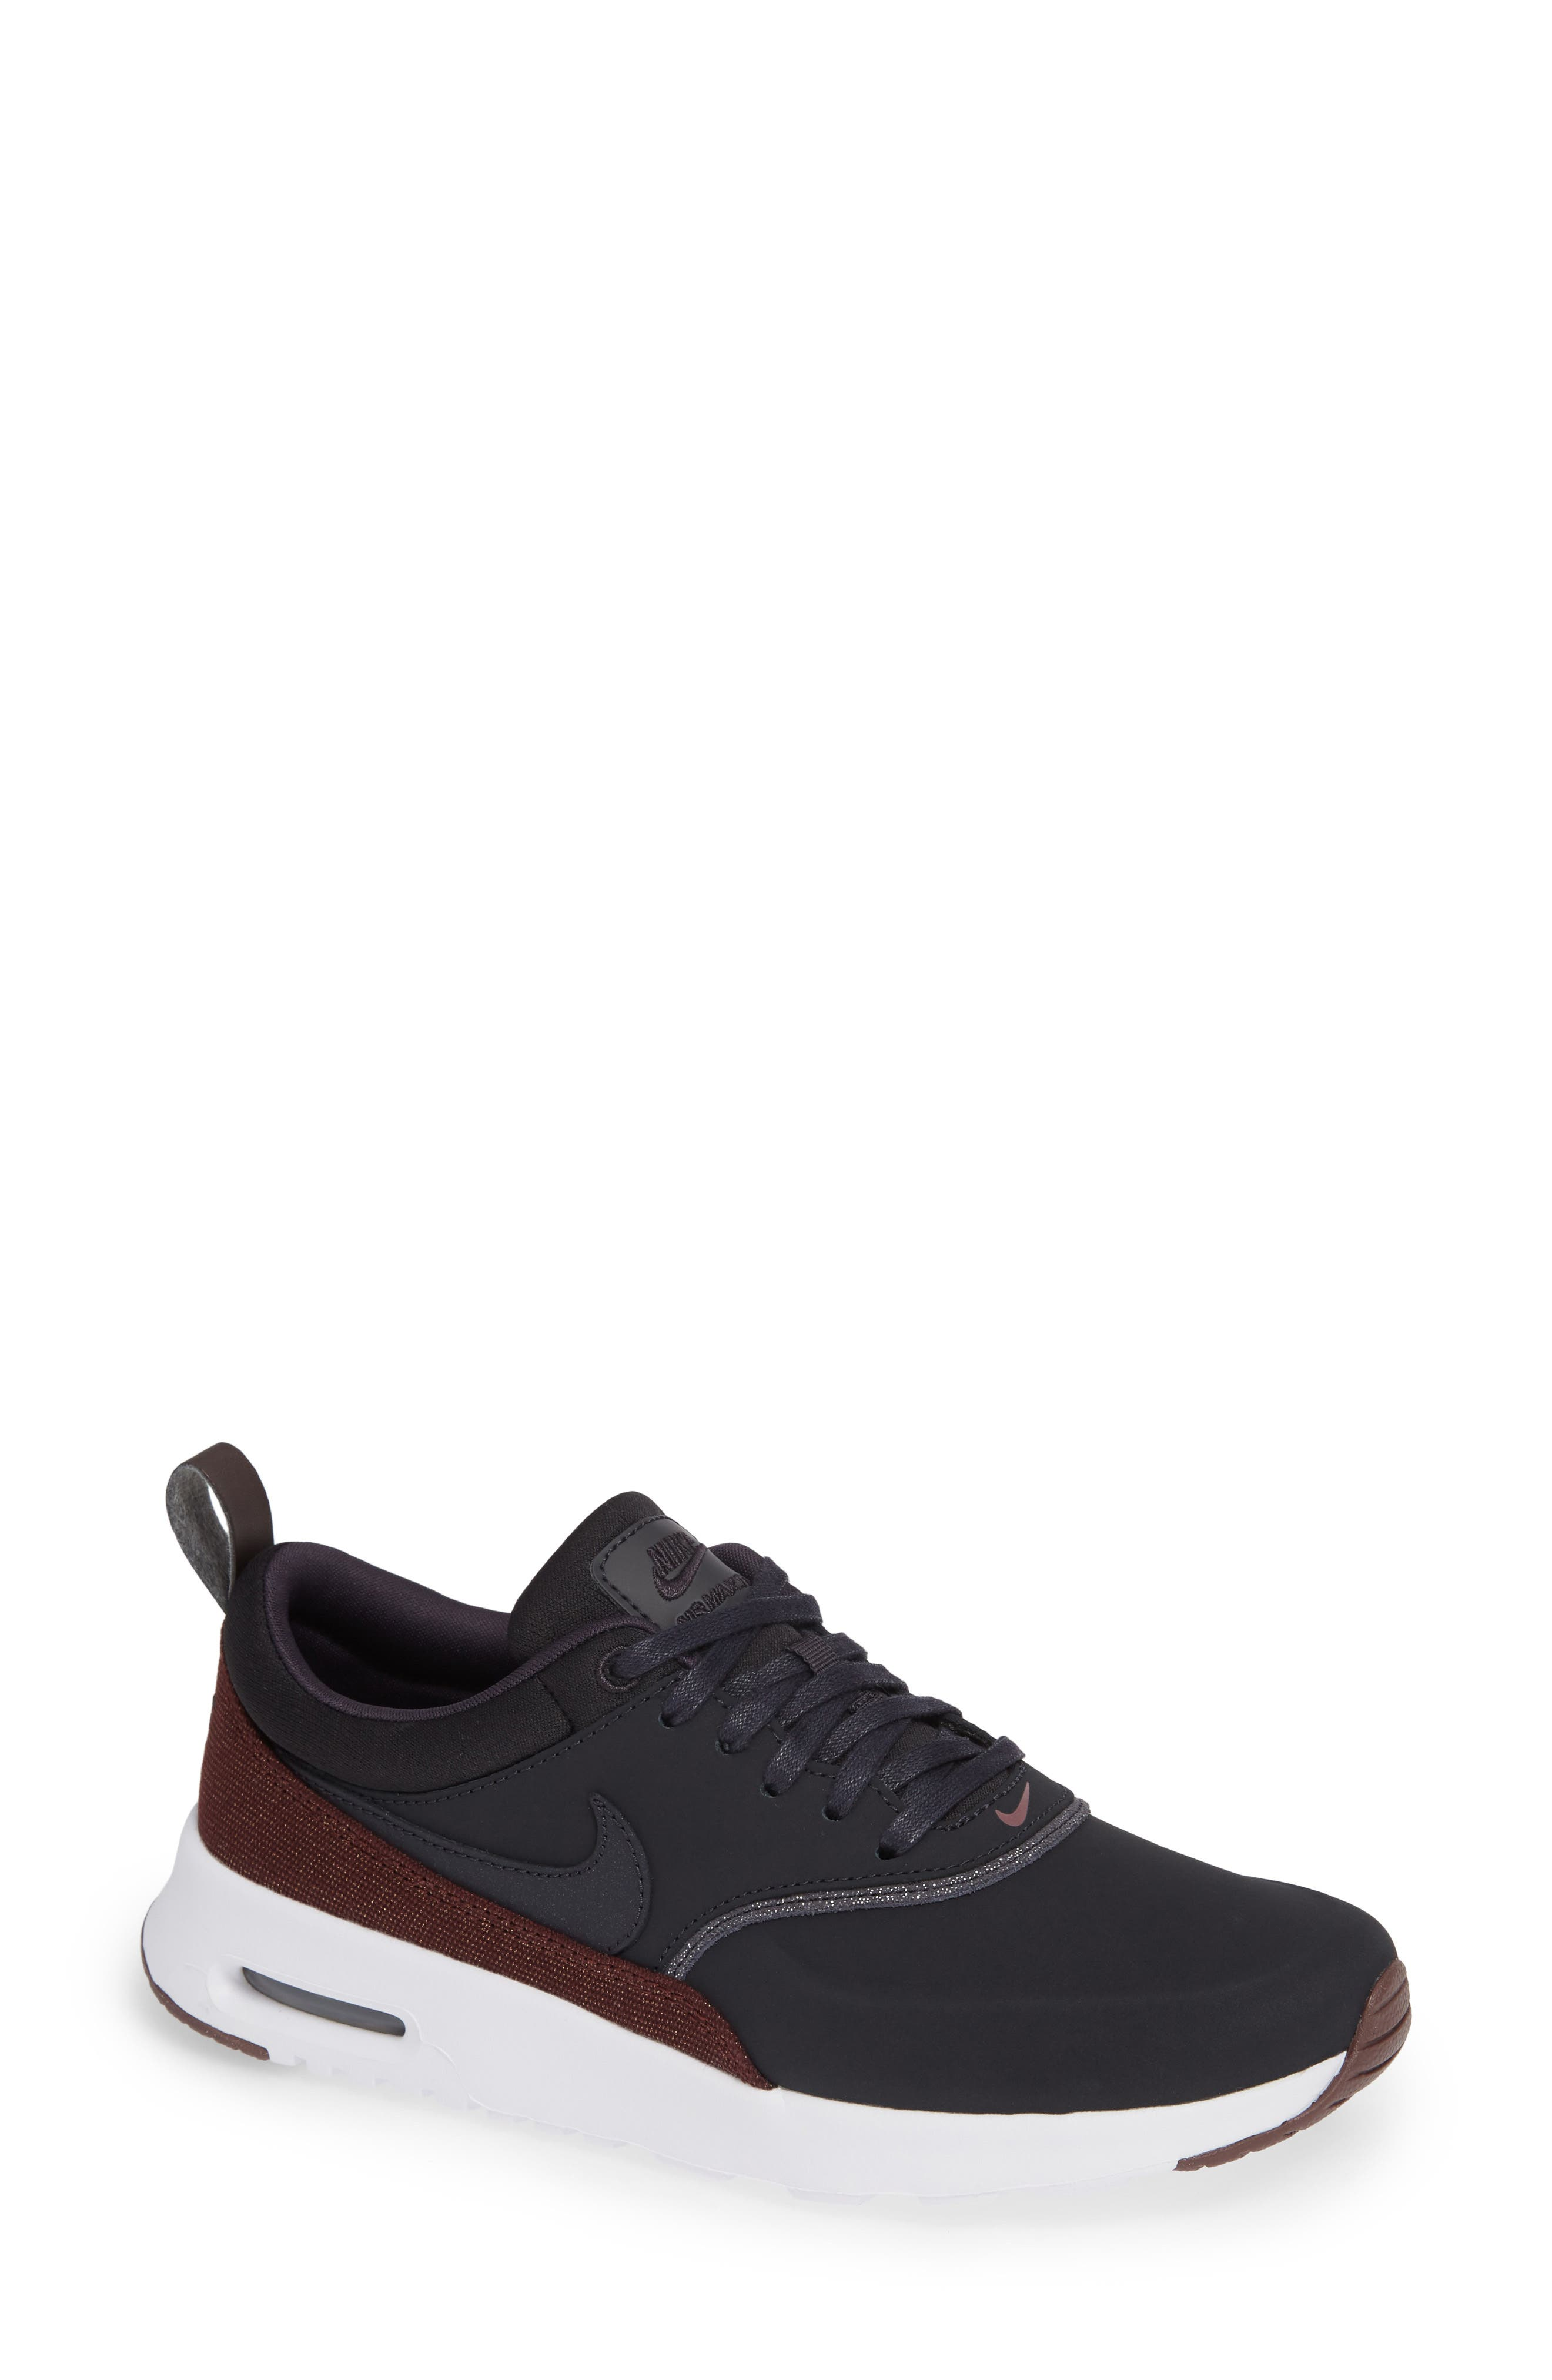 Air Max Thea Sneaker,                         Main,                         color, OIL GREY/ OIL GREY/ MAHOGANY